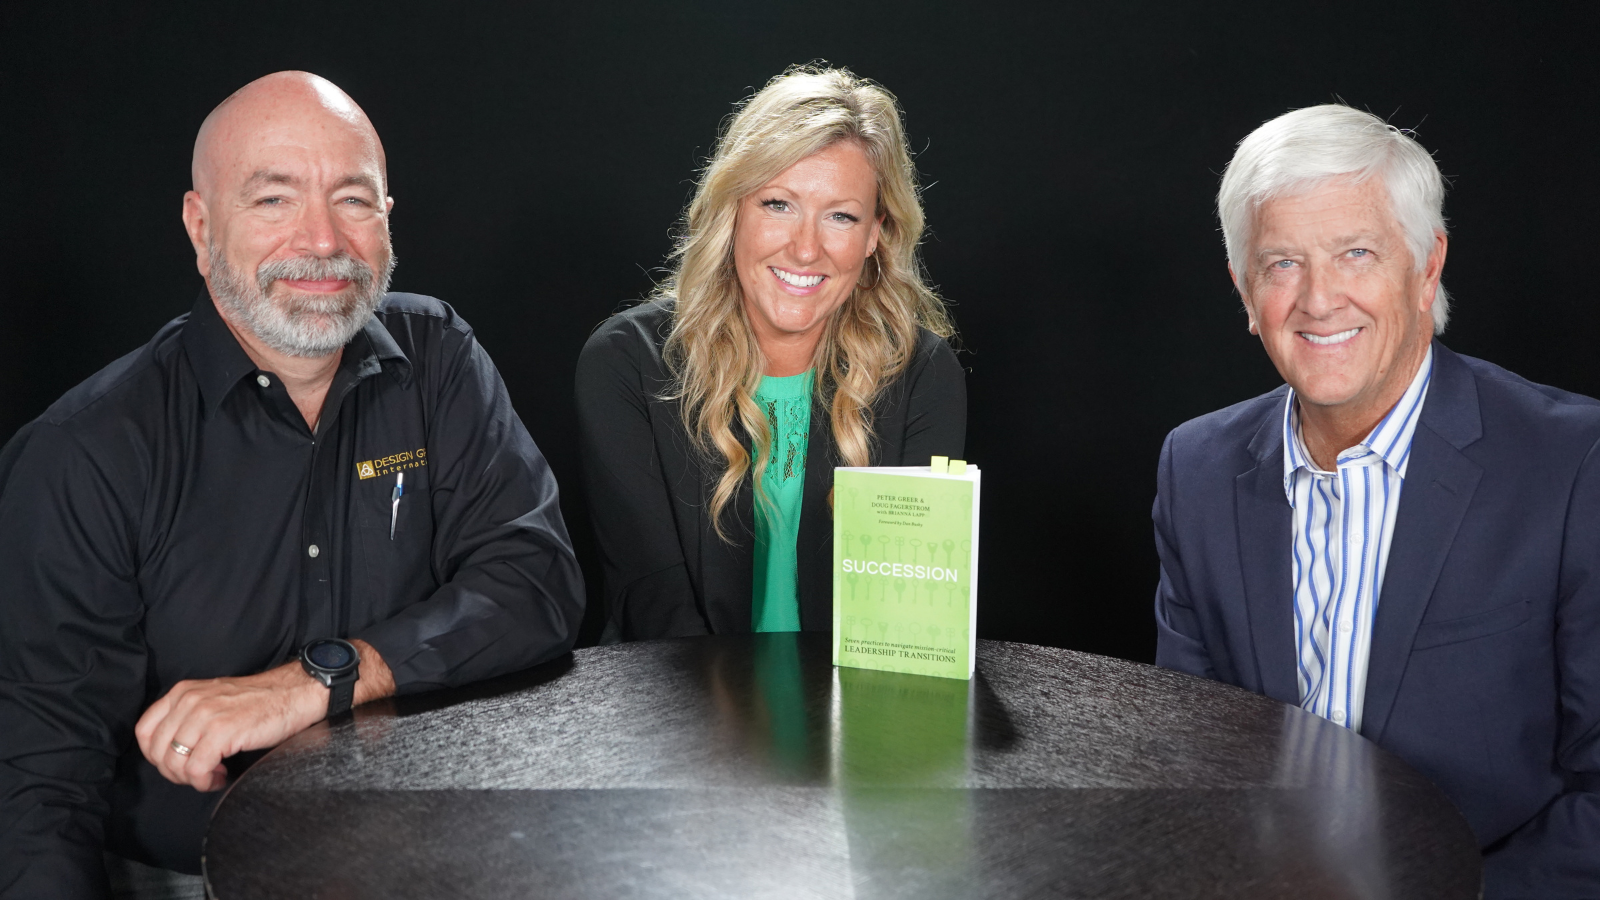 The Third Turn Video Podcast with Mark L. Vincent,  Jeanette Robert, and Doug Fagerstrom